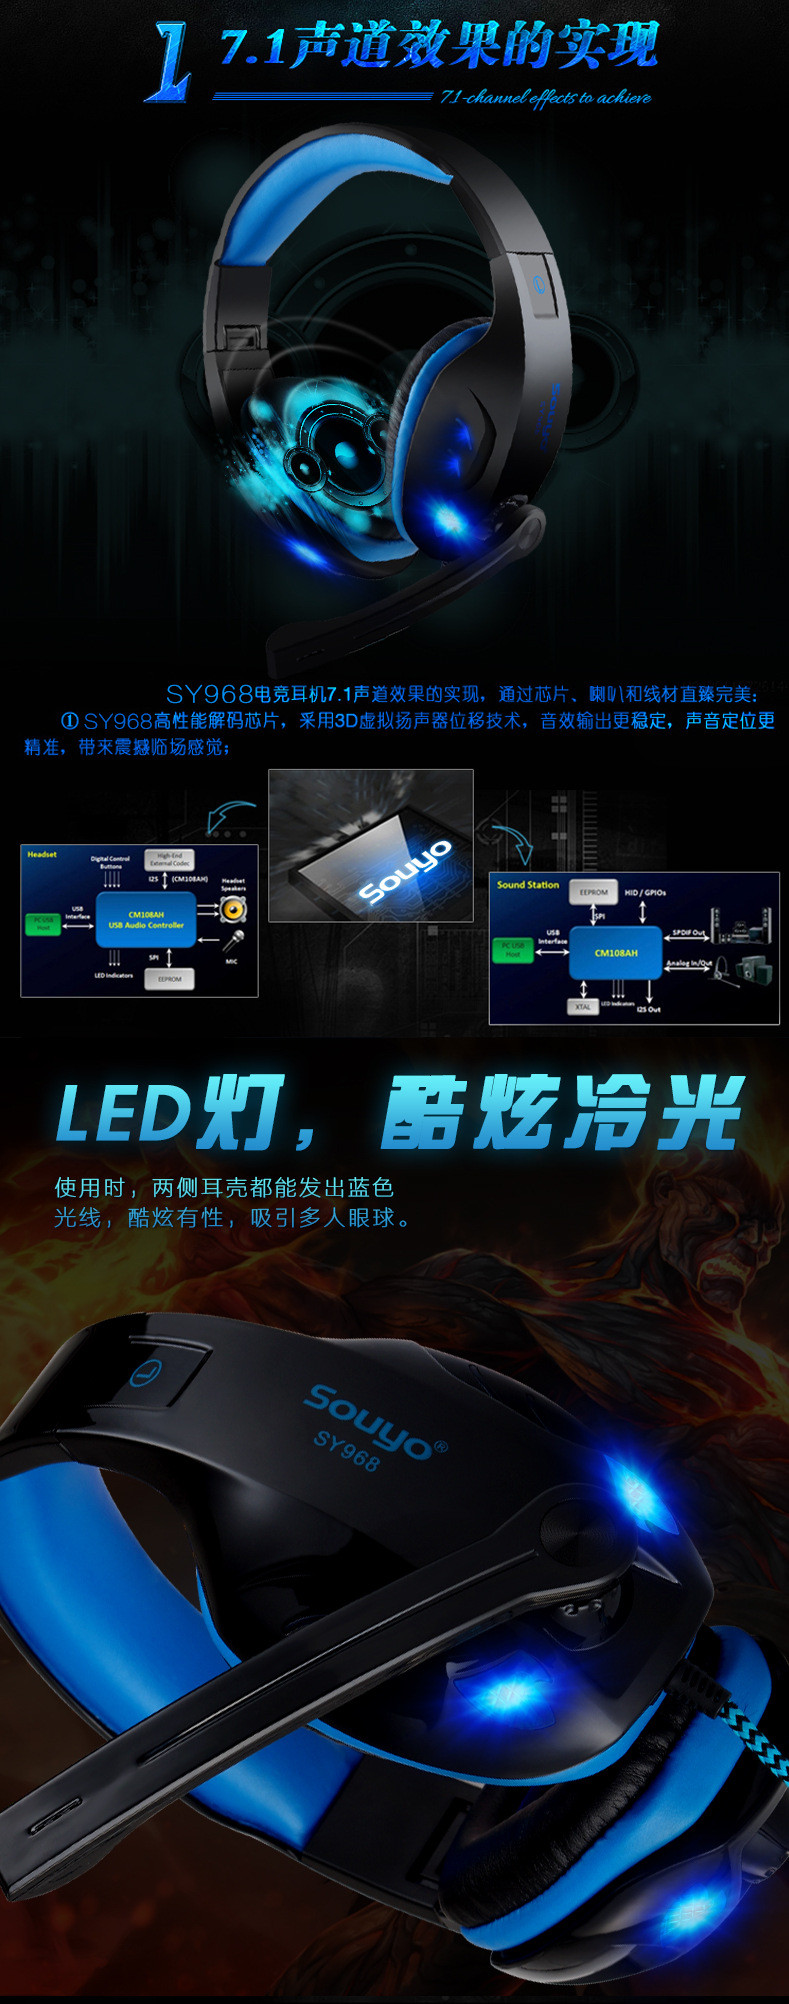 OEM Gaming Headphone, Virtual 7.1 Stereo Surround Sound Computer Headphone with Boom Microphone, Foldable LED Headset with USB